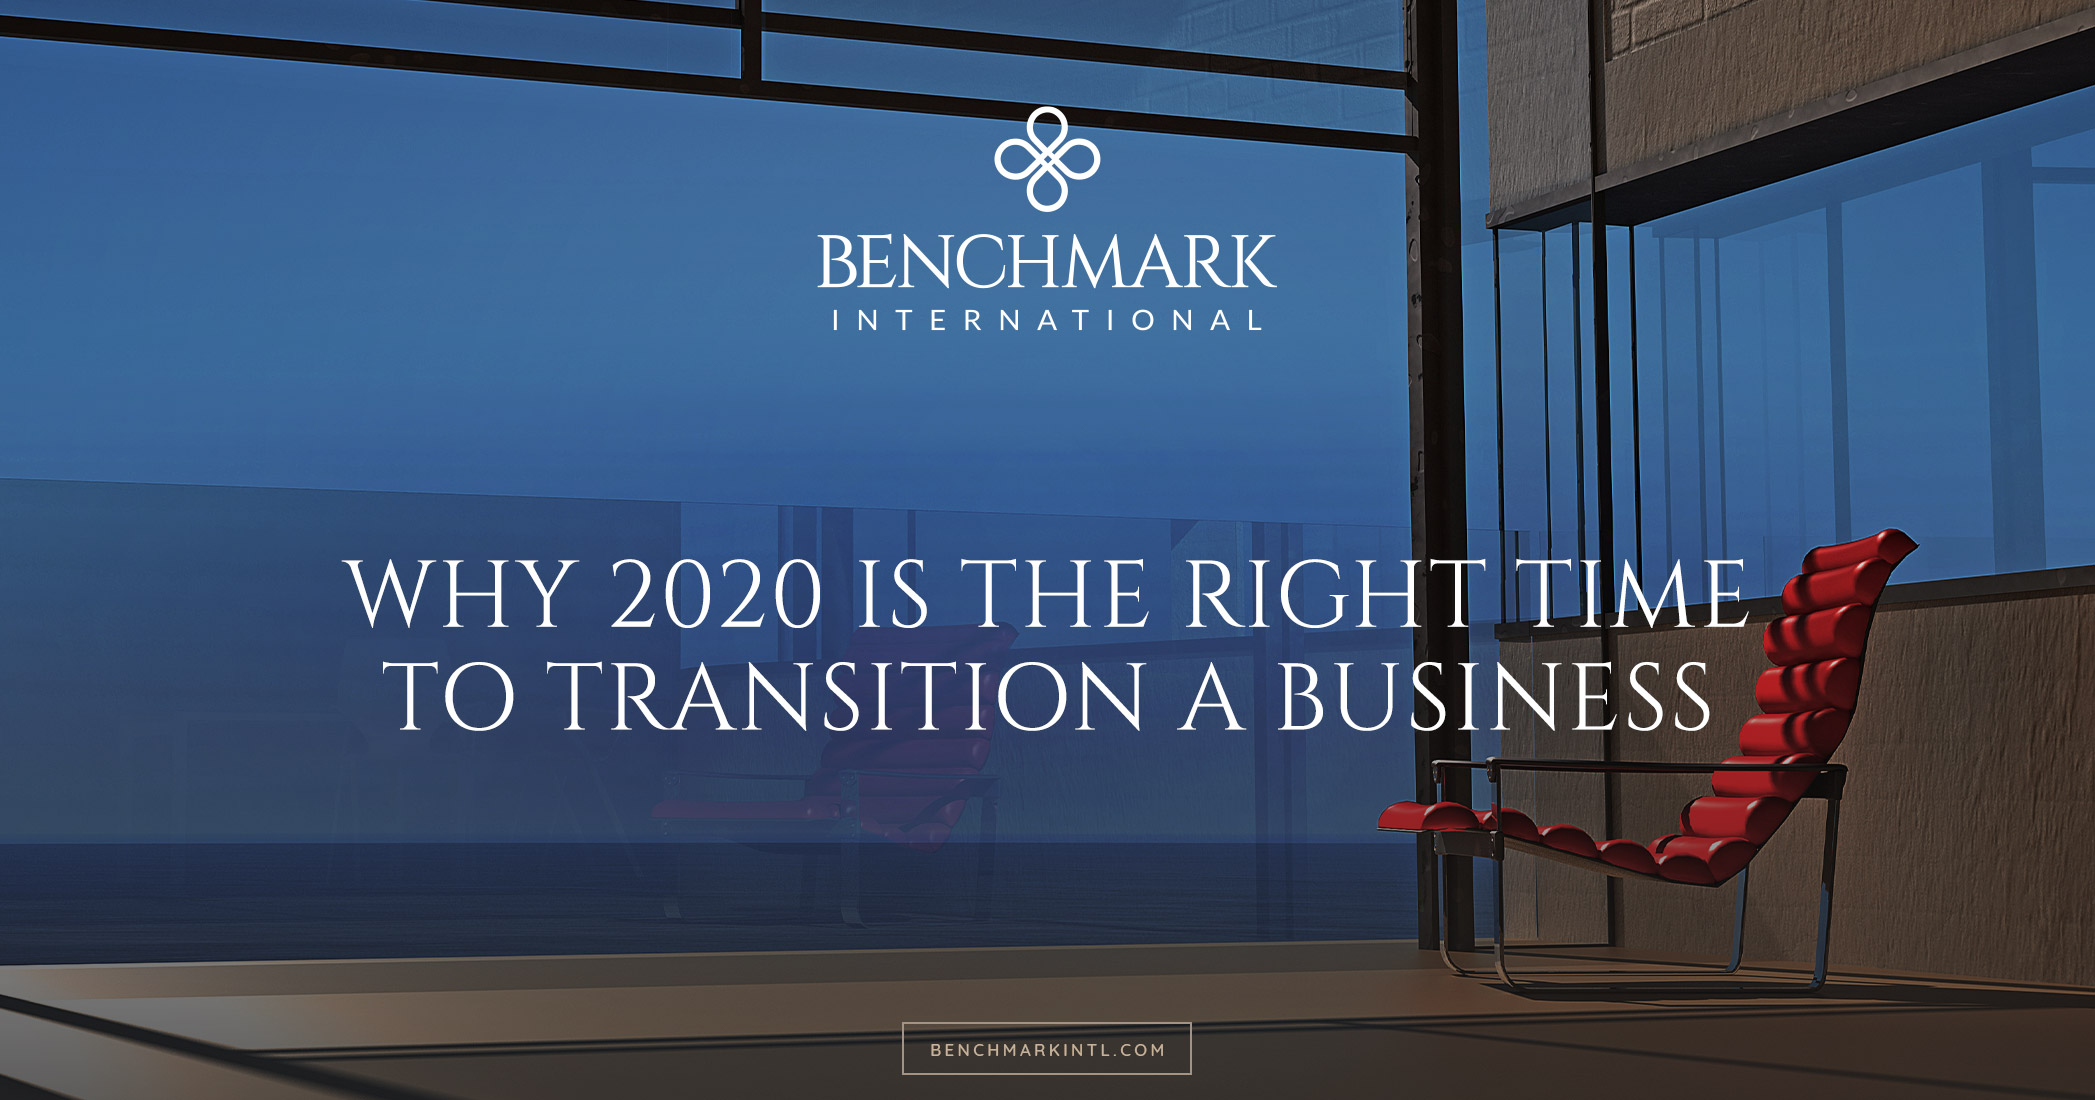 Why 2020 Is The Right Time To Transition A Business